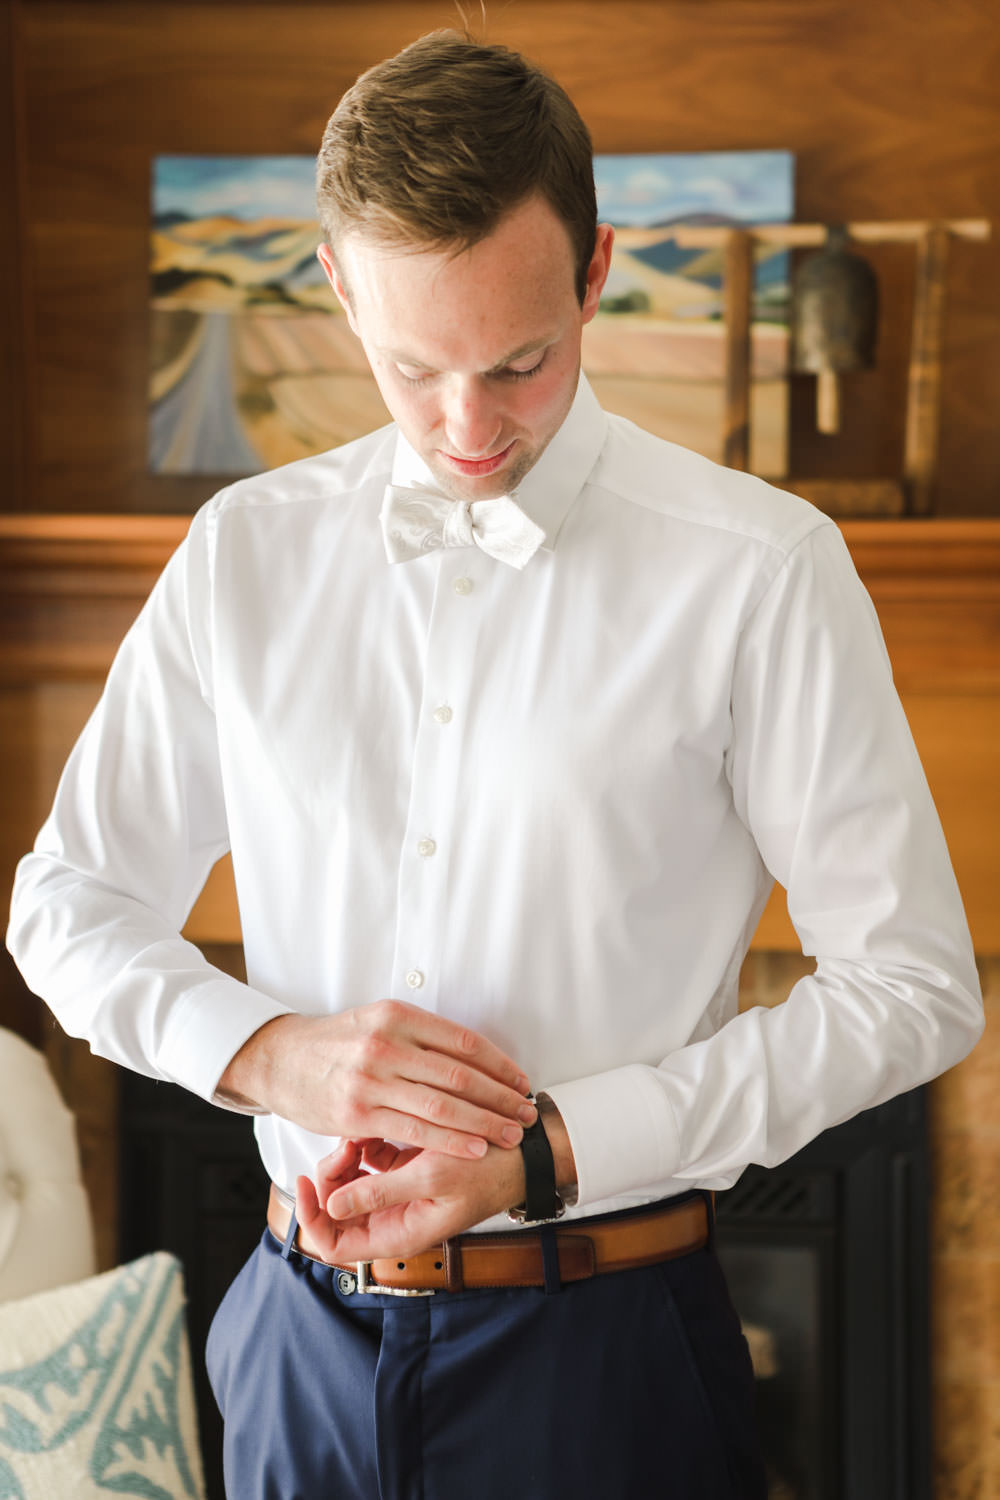 Groom putting on watch before wedding, Cavin Elizabeth Photography